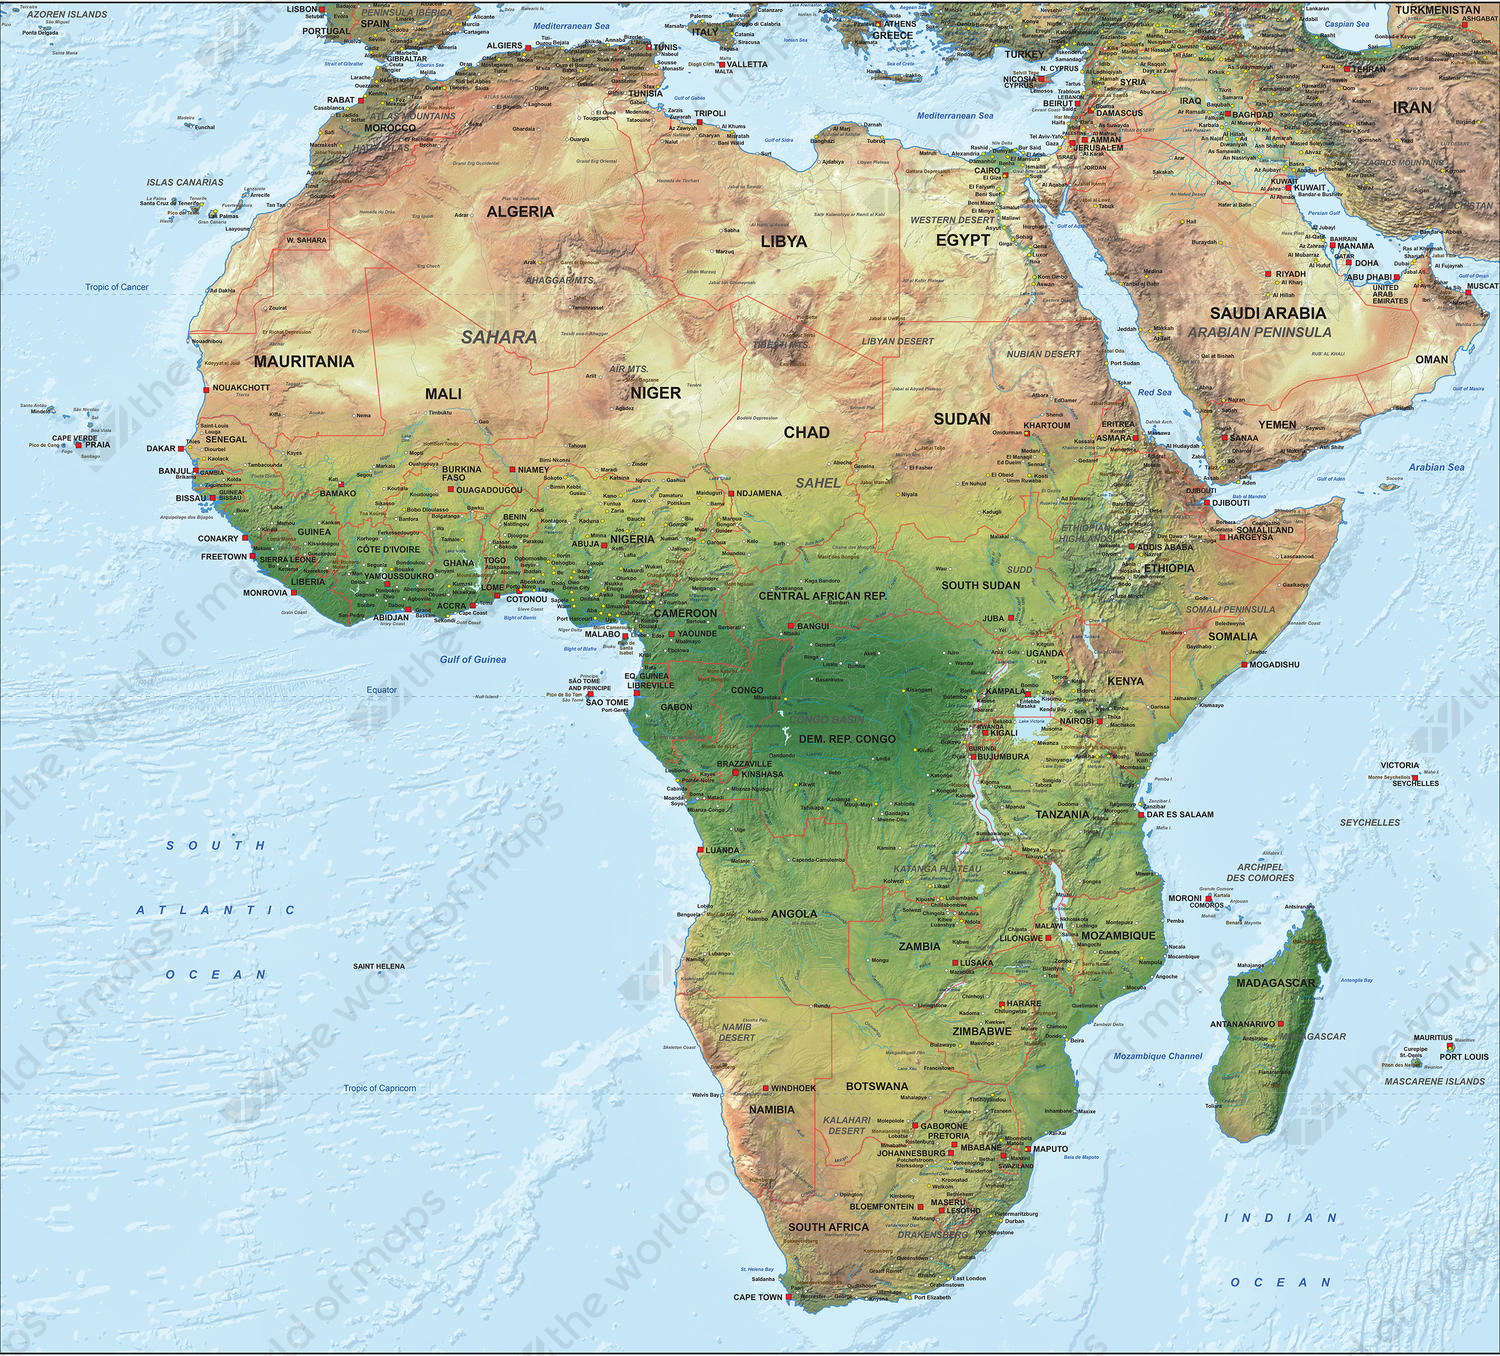 Digital Physical Map Africa 1288 The World of Mapscom